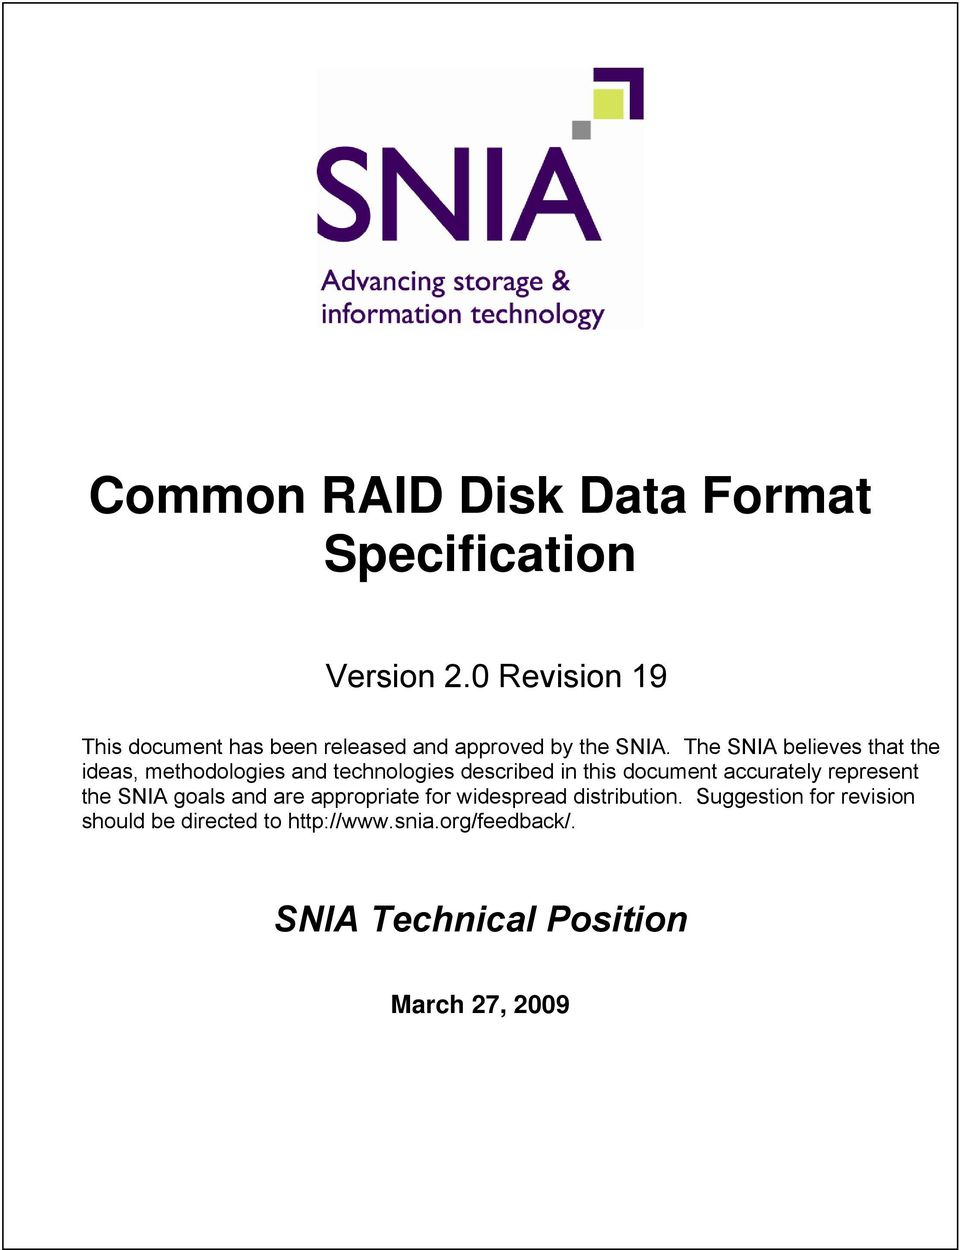 The SNIA believes that the ideas, methodologies and technologies described in this document accurately